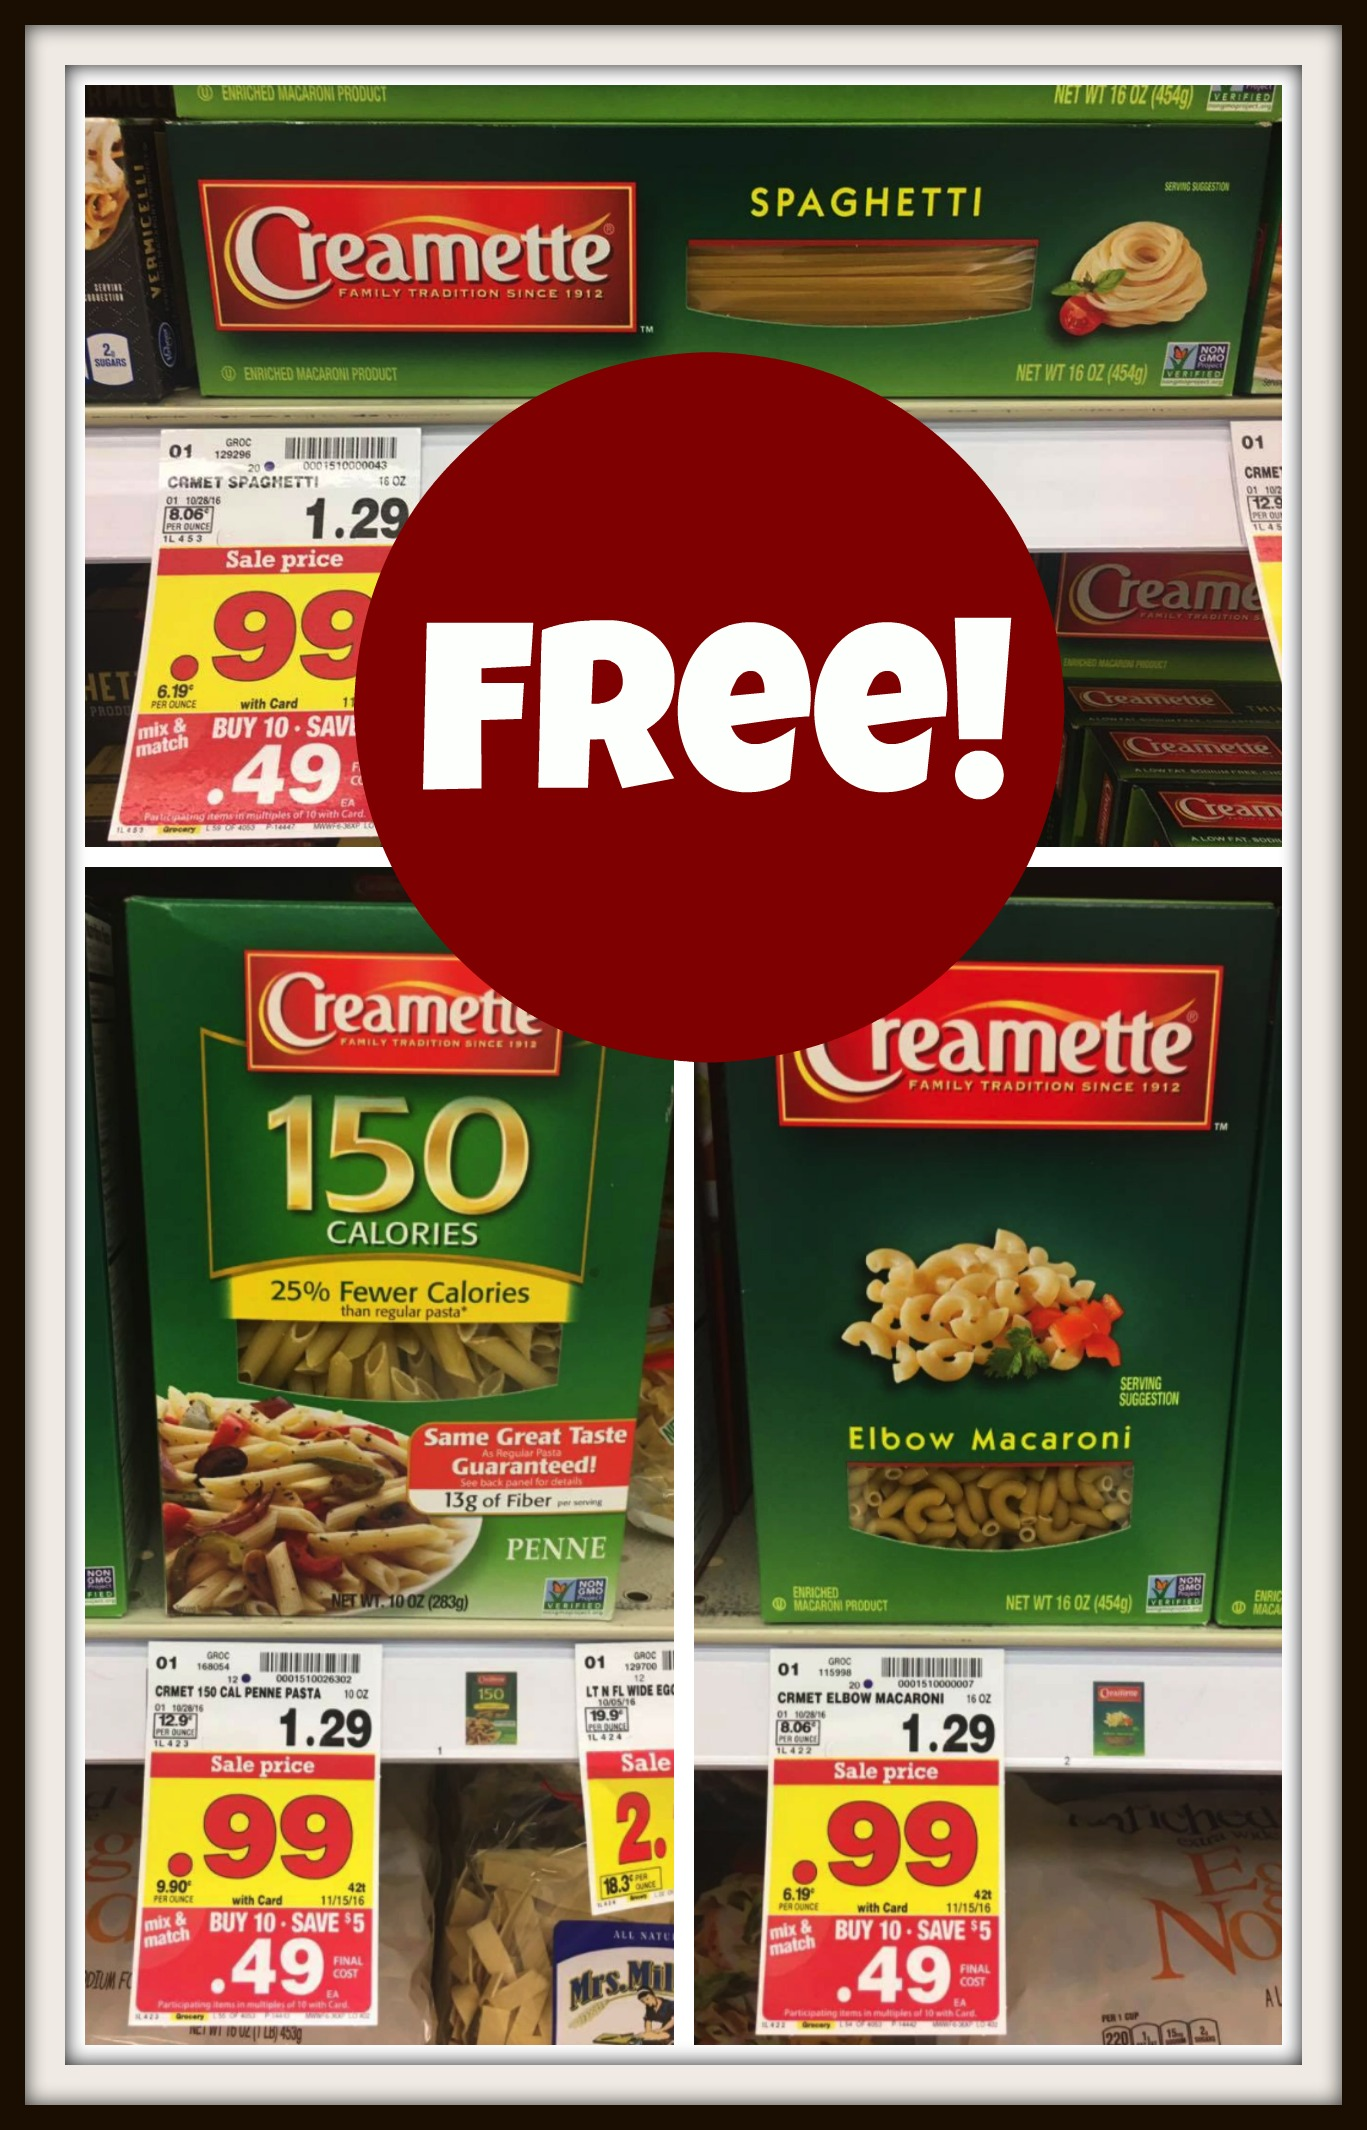 Creamette coupons